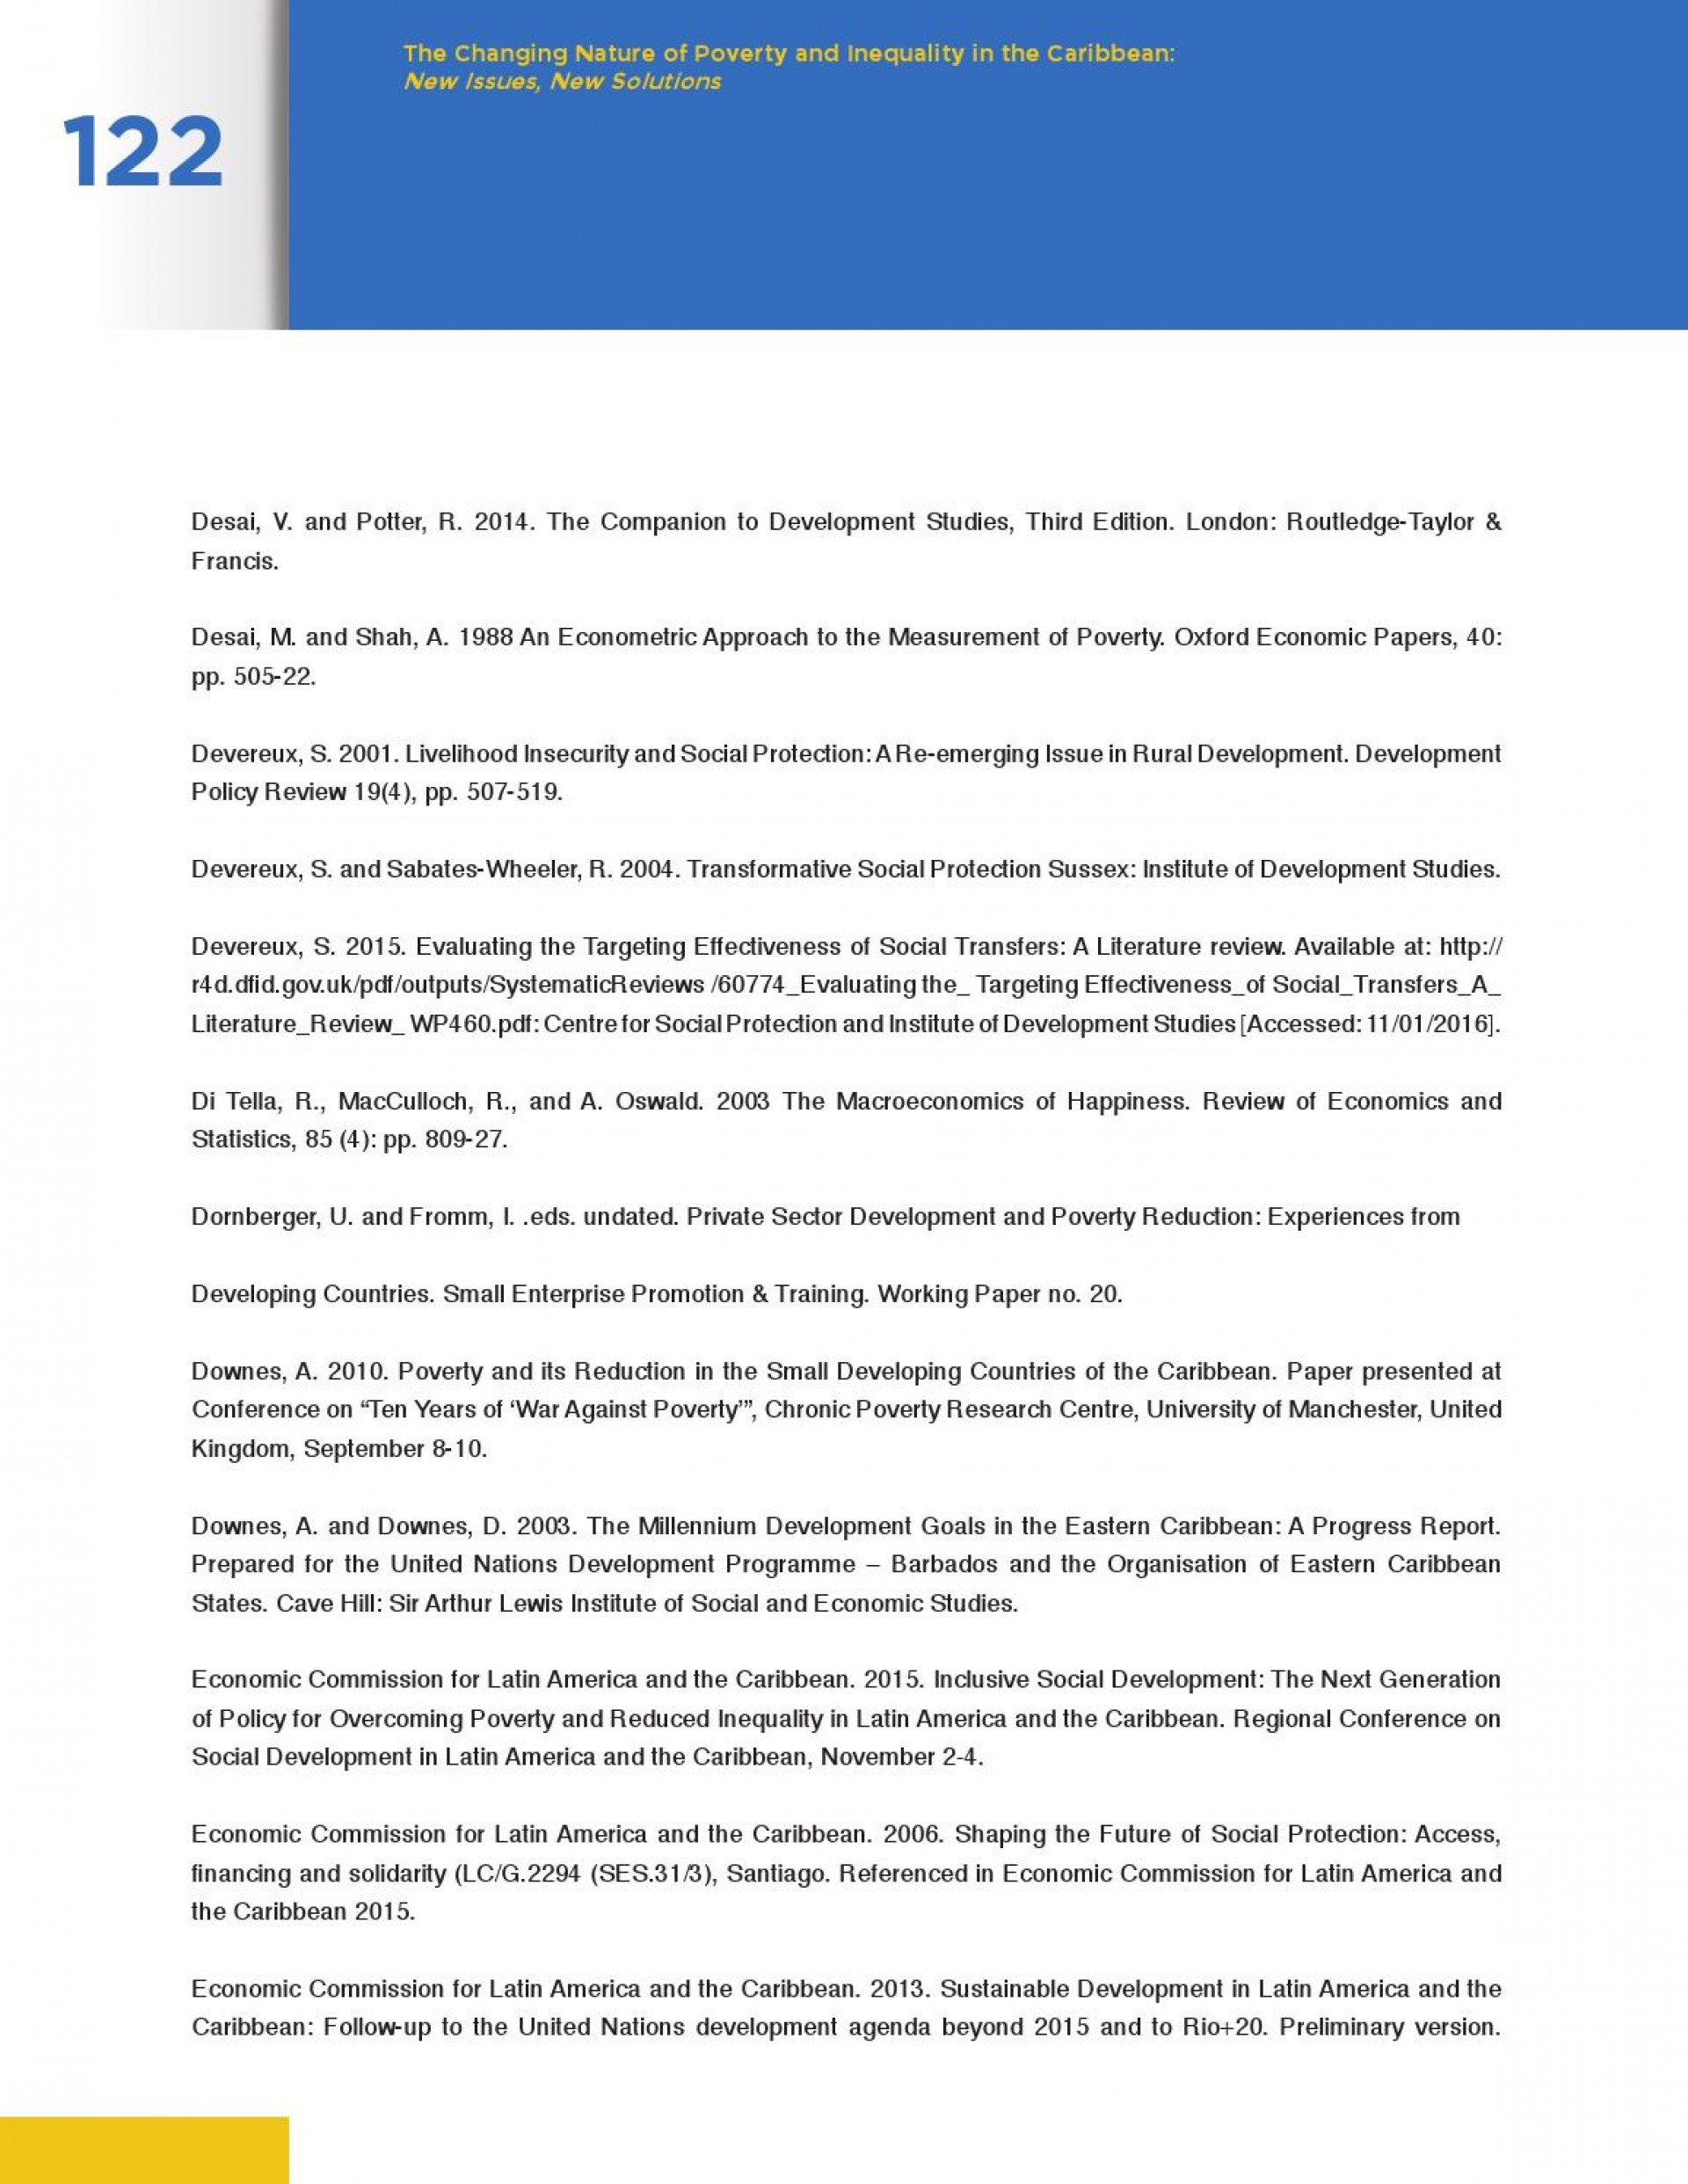 009 Economic Researchs Topics Page 122 Formidable Research Papers Good For Pdf 1920